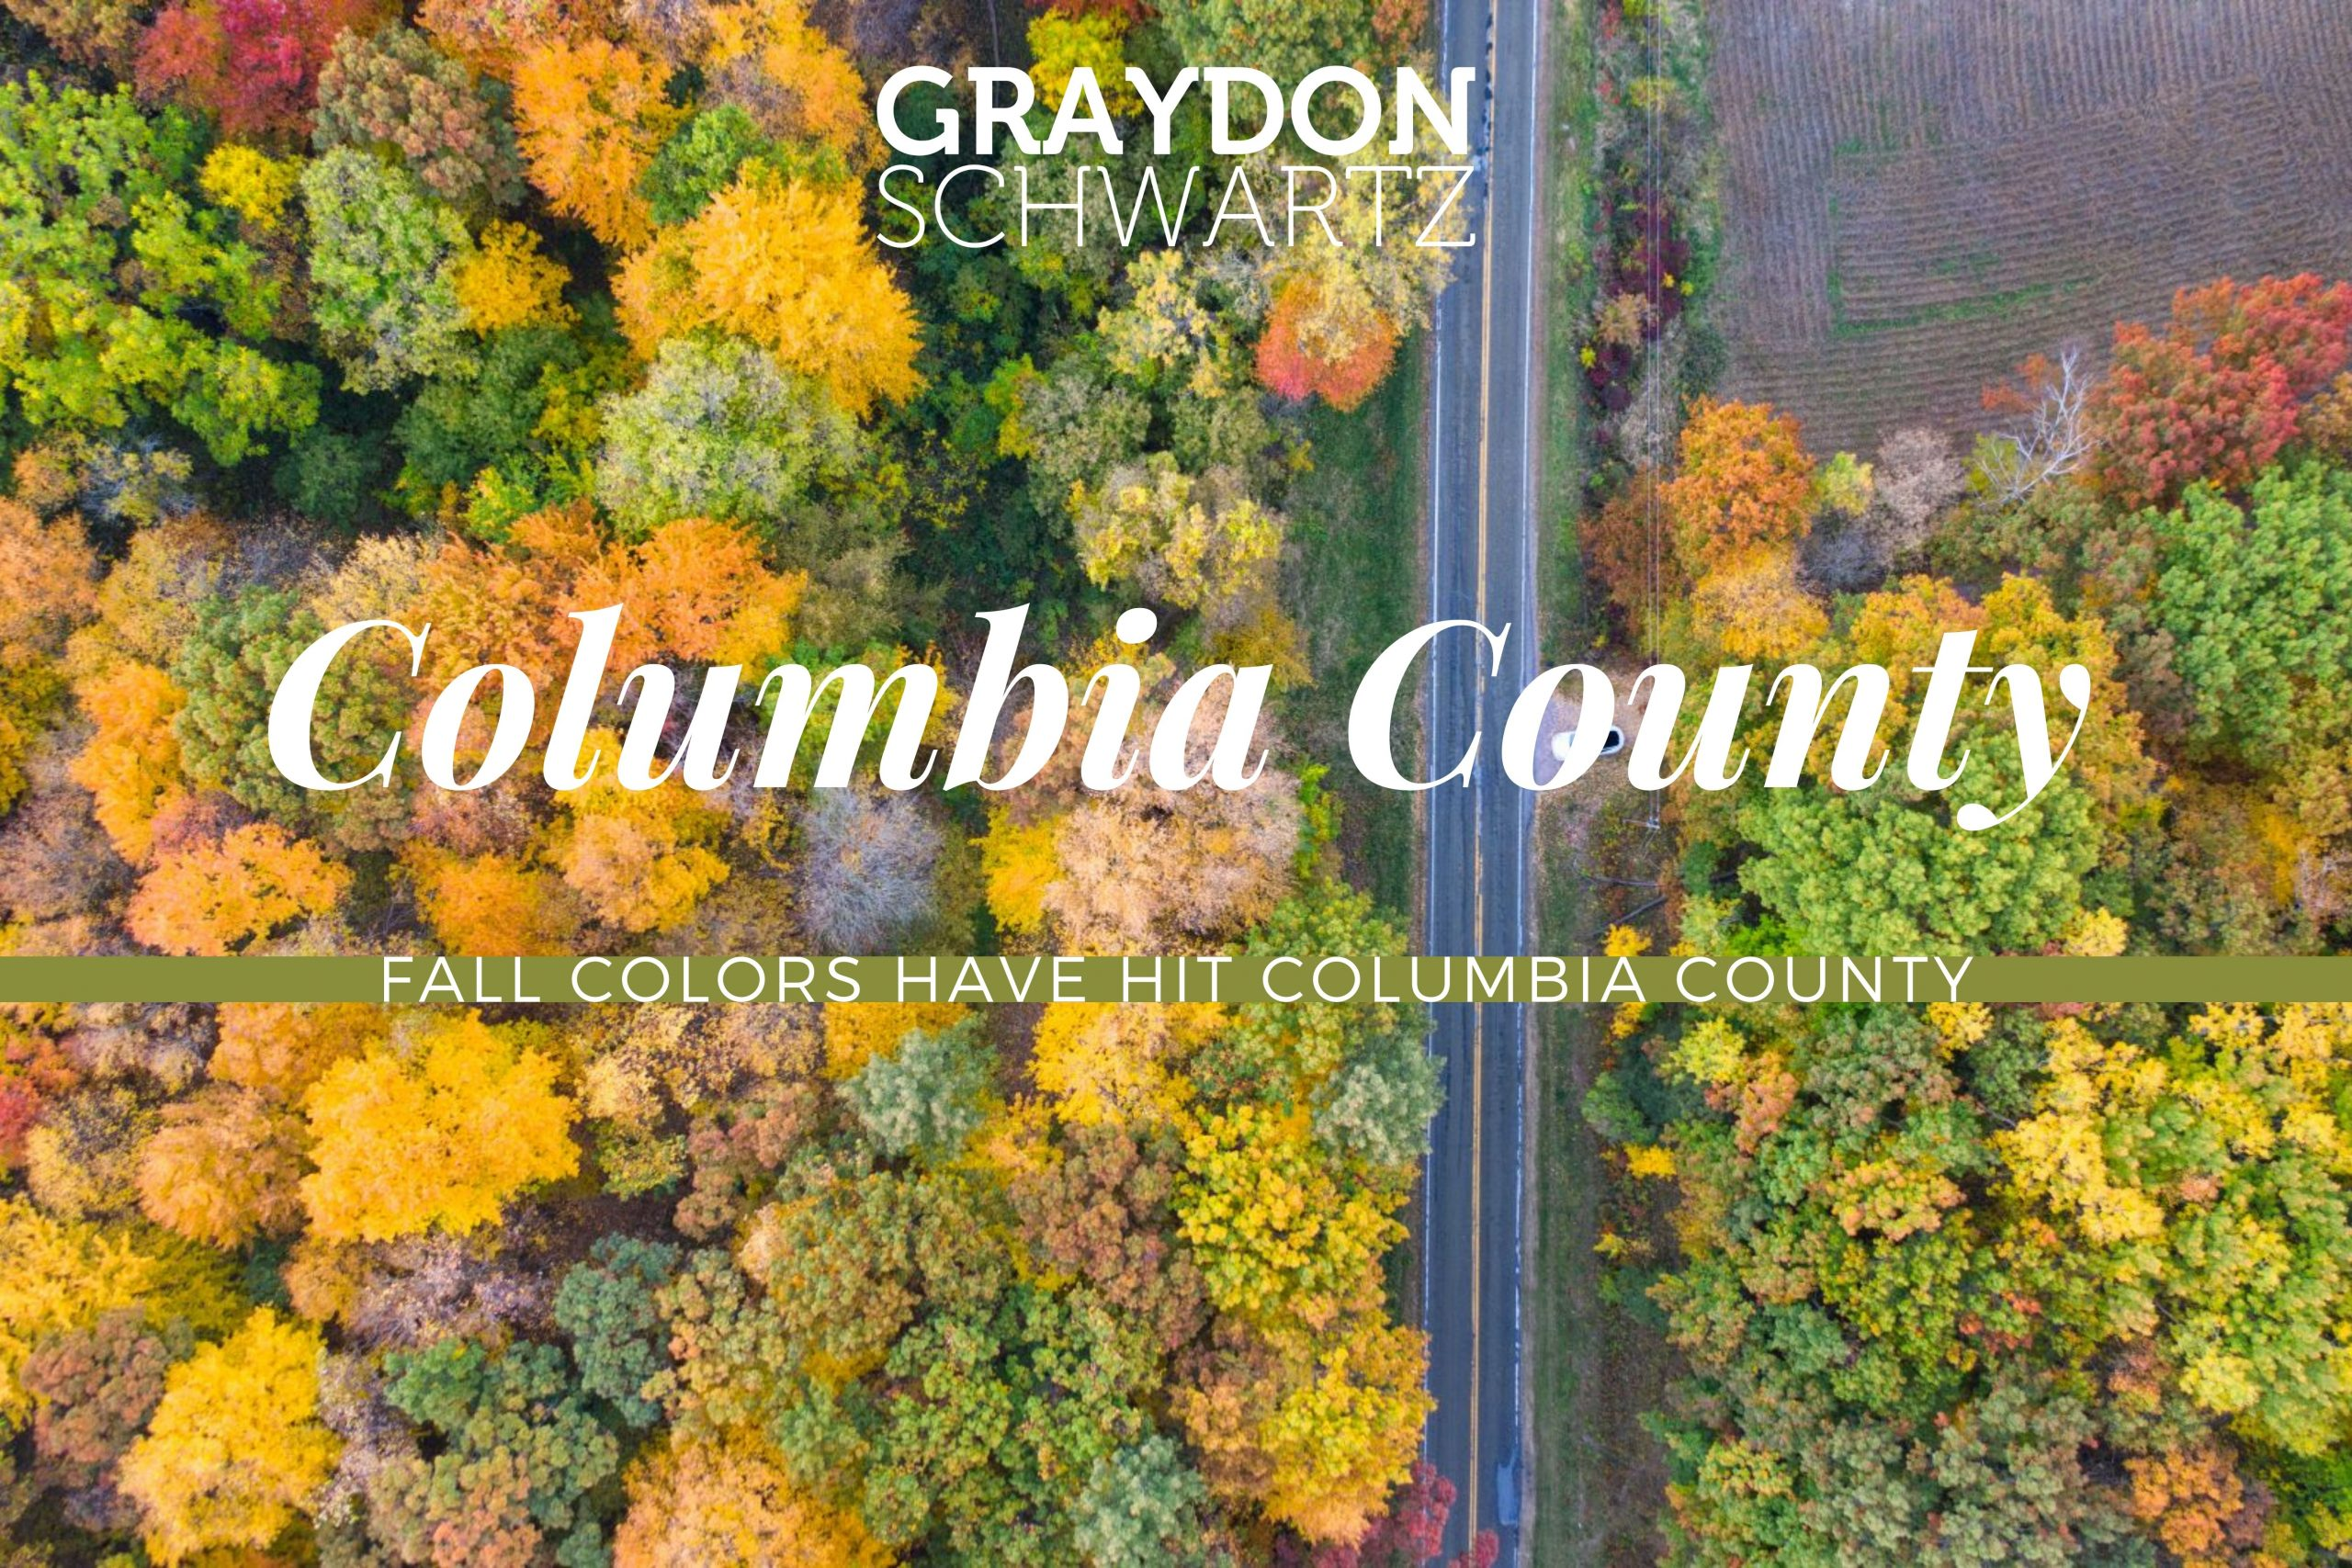 fall colors have hit columbia county scaled | graydonschwartz.com